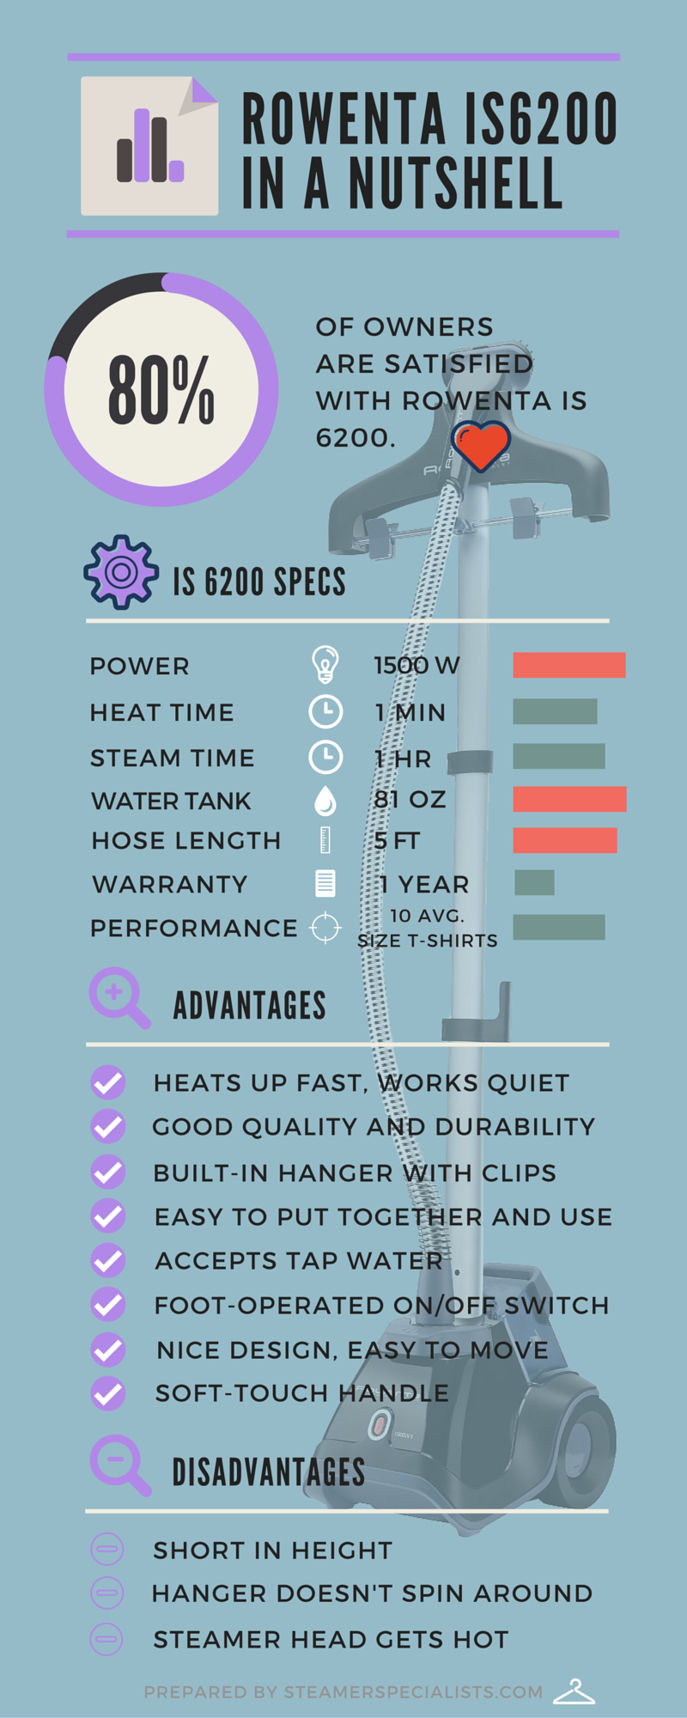 Rowenta IS6200 infographic with specifications, advantages and disadvantages